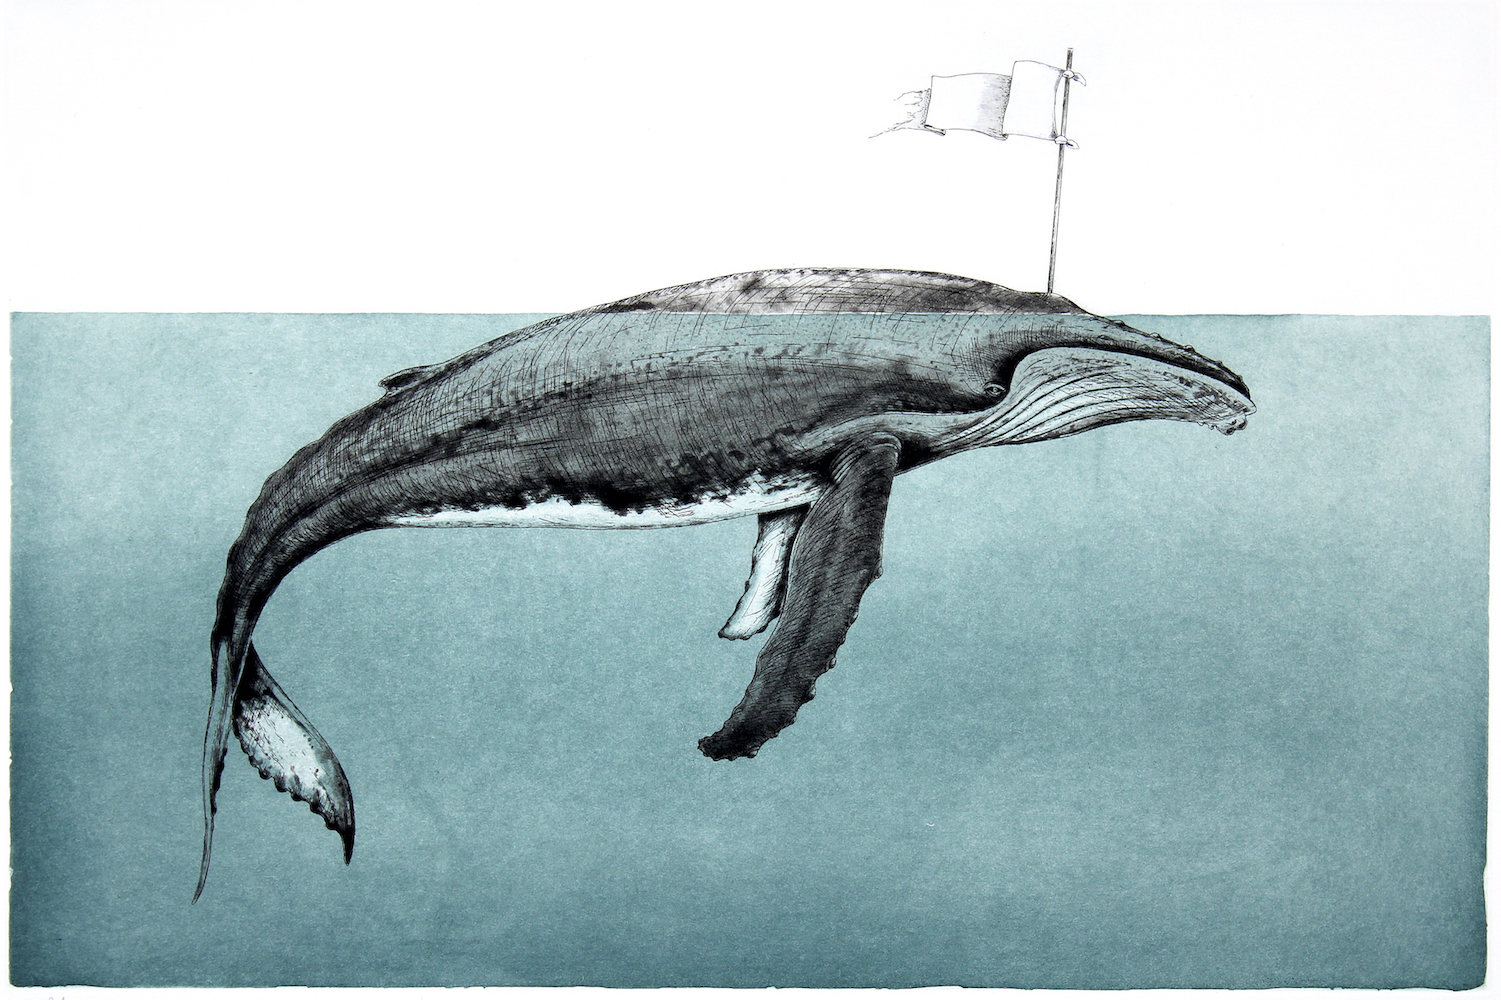 Justin Gibbens, Breach, 2020, hard ground and aquatint etching, 17 x 22 inches, edition of 10, $1000.